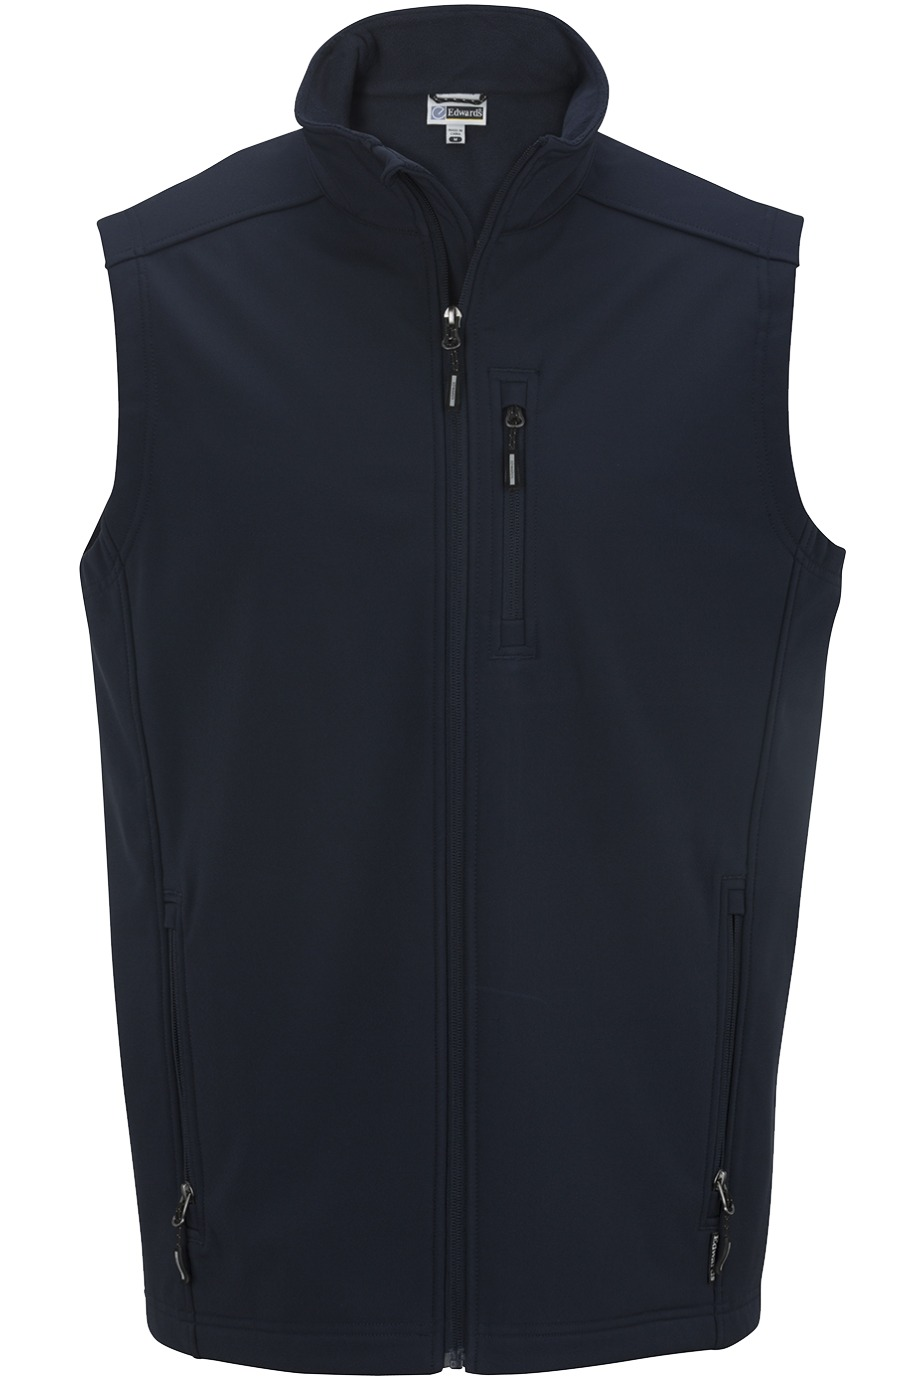 Edwards Garment 3425 - Men's Soft Shell Vest